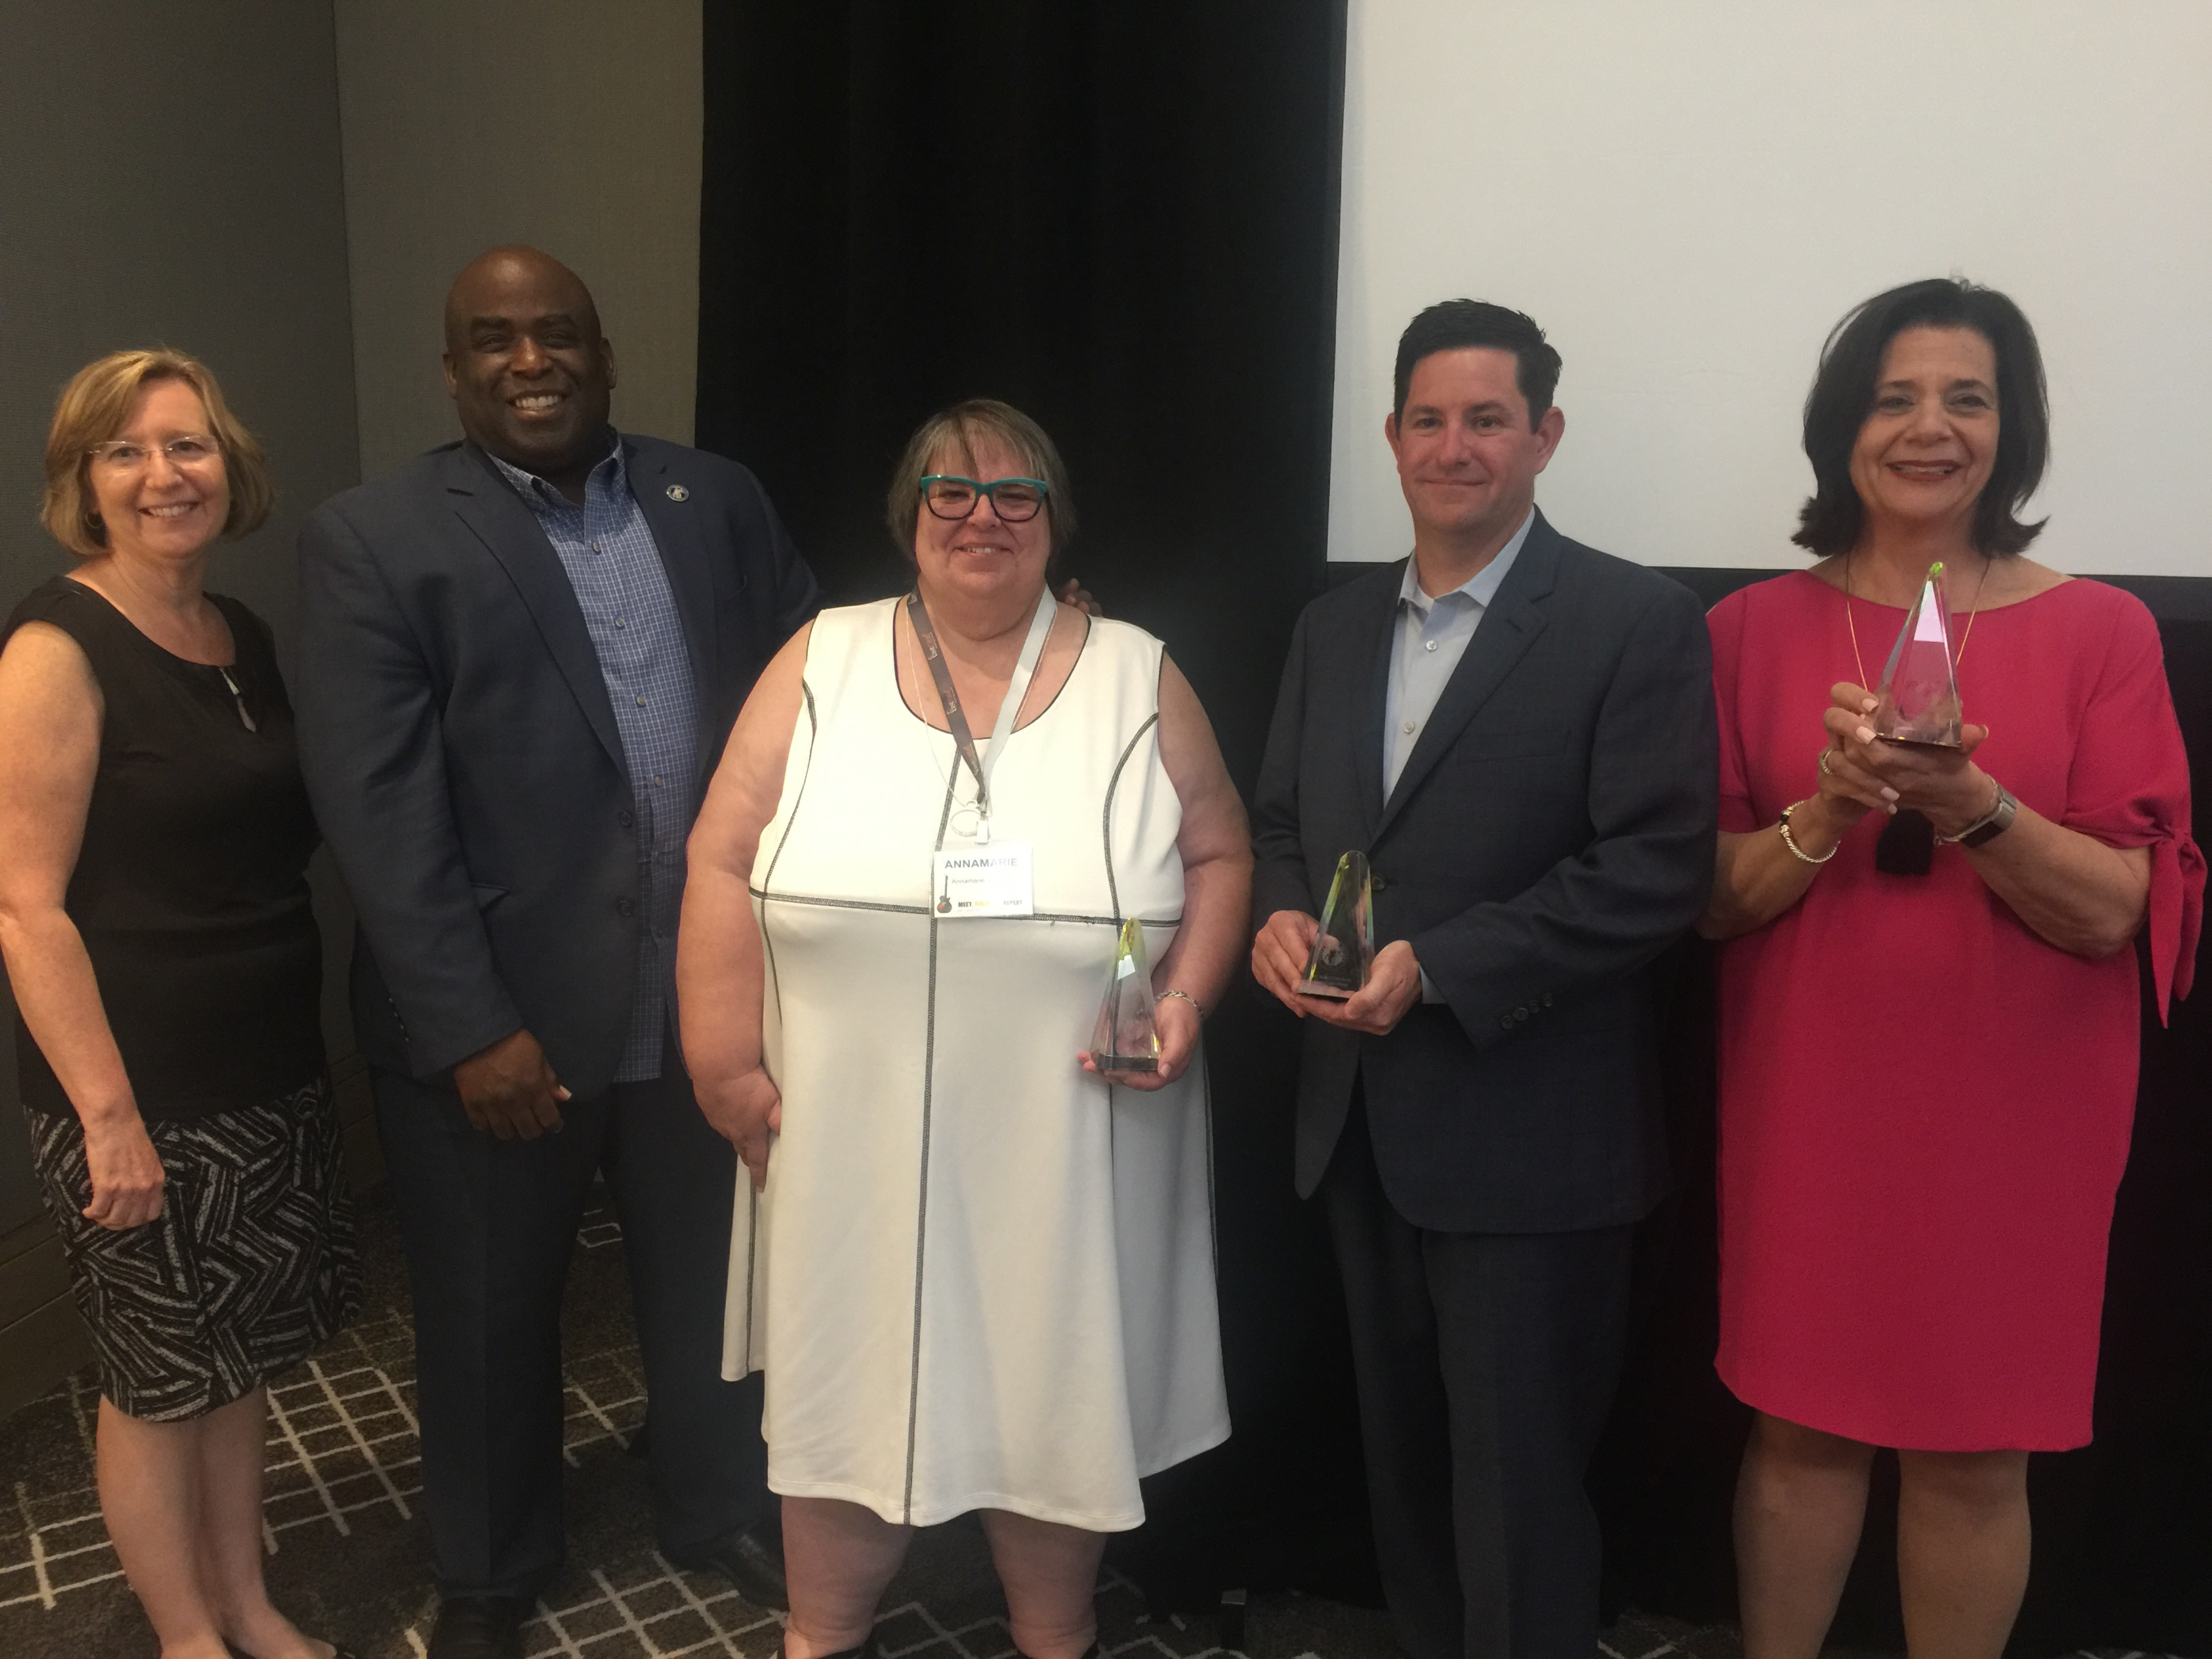 Washoe Legal Services Award Winners